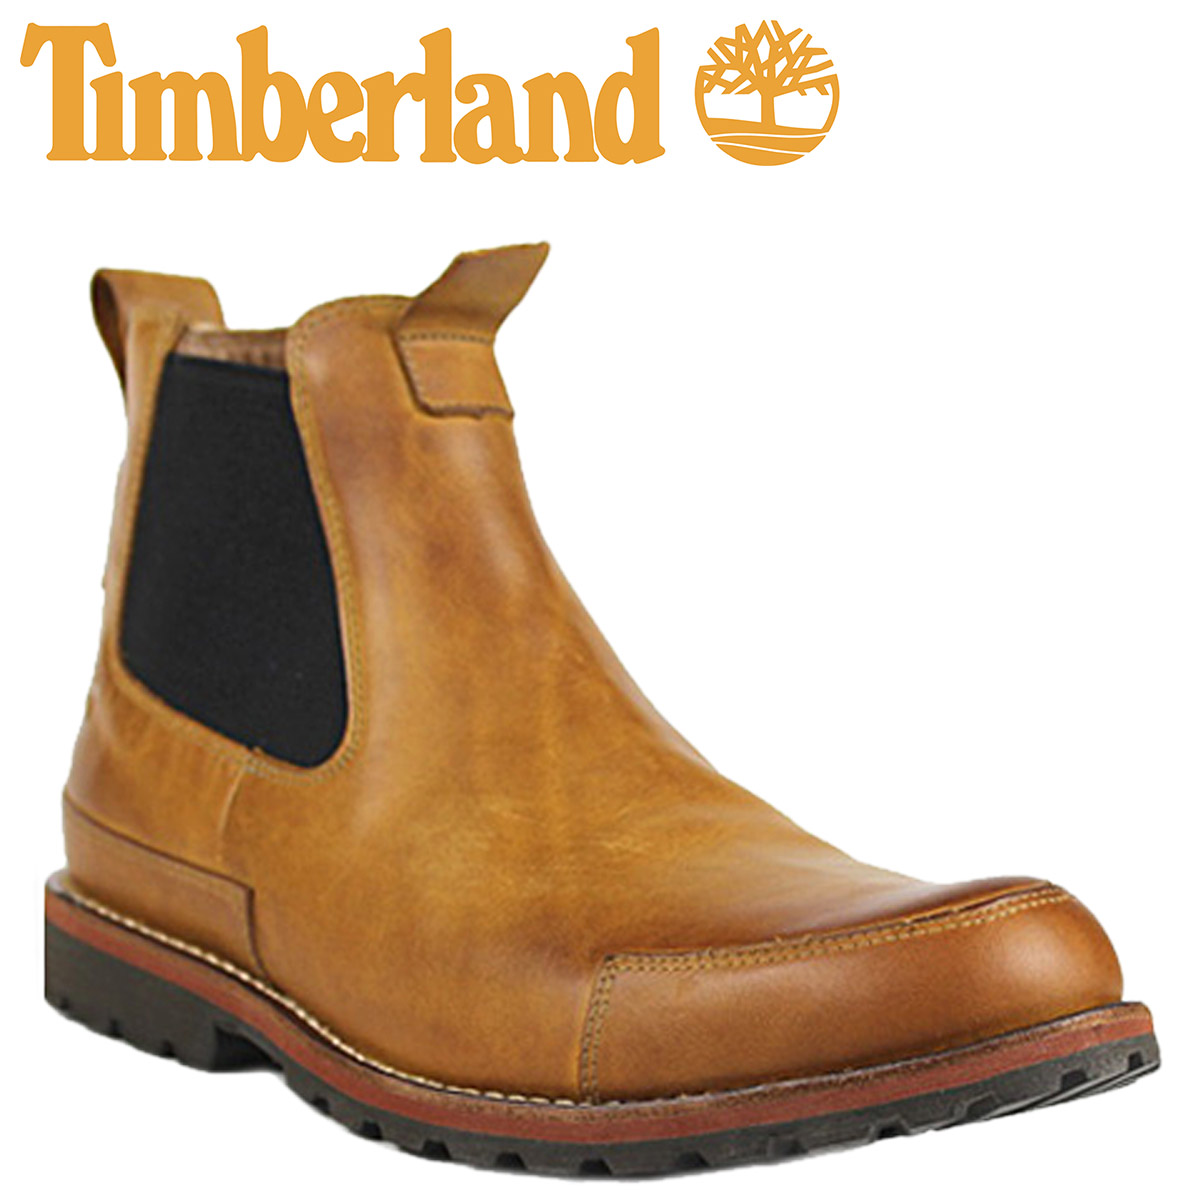 3d3010101c18 Sugar Online Shop  Timberland Timberland Earthkeepers Chelsea boots 5509R  Earthkeepers Chelsea Boot oil leather mens WHEAT